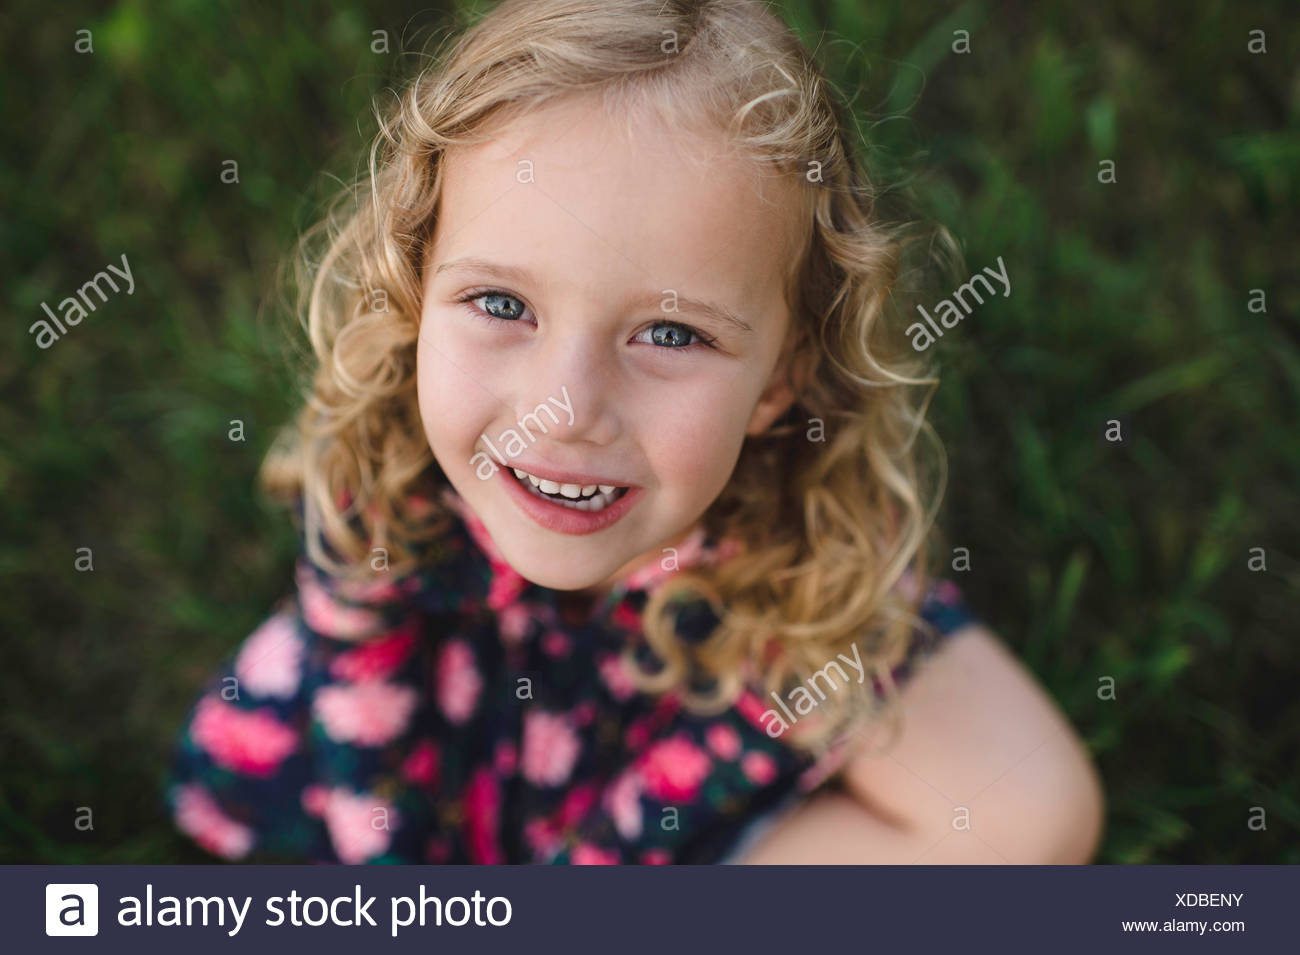 Overhead portrait of blond haired girl on grass - Stock Image